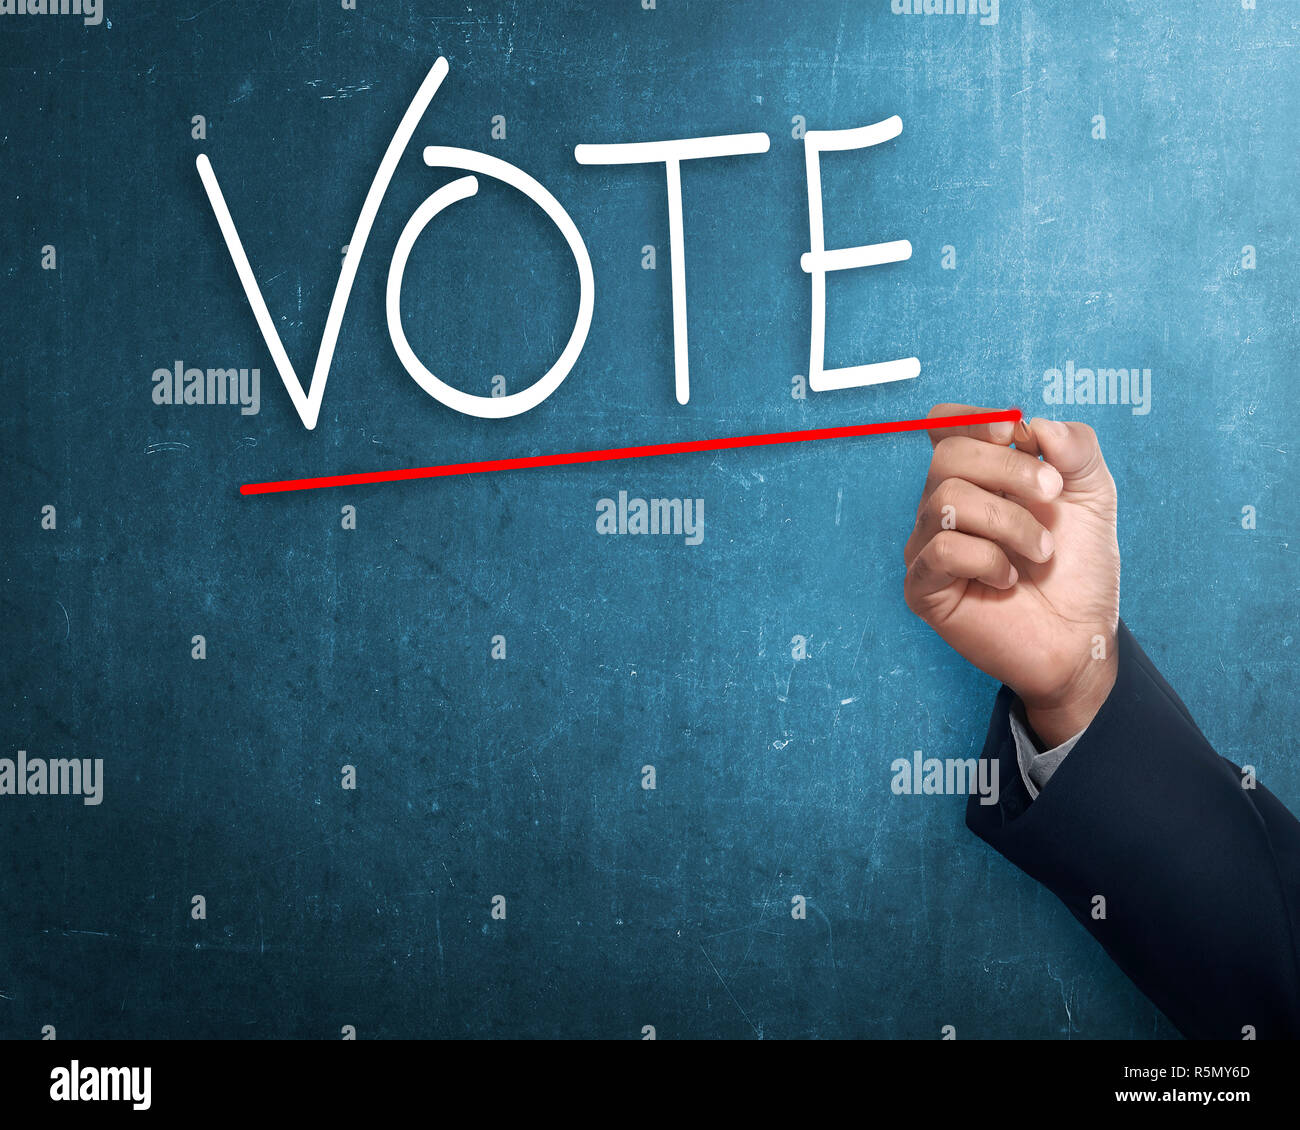 handwriting vote with red underline stock photo 227268453 alamy